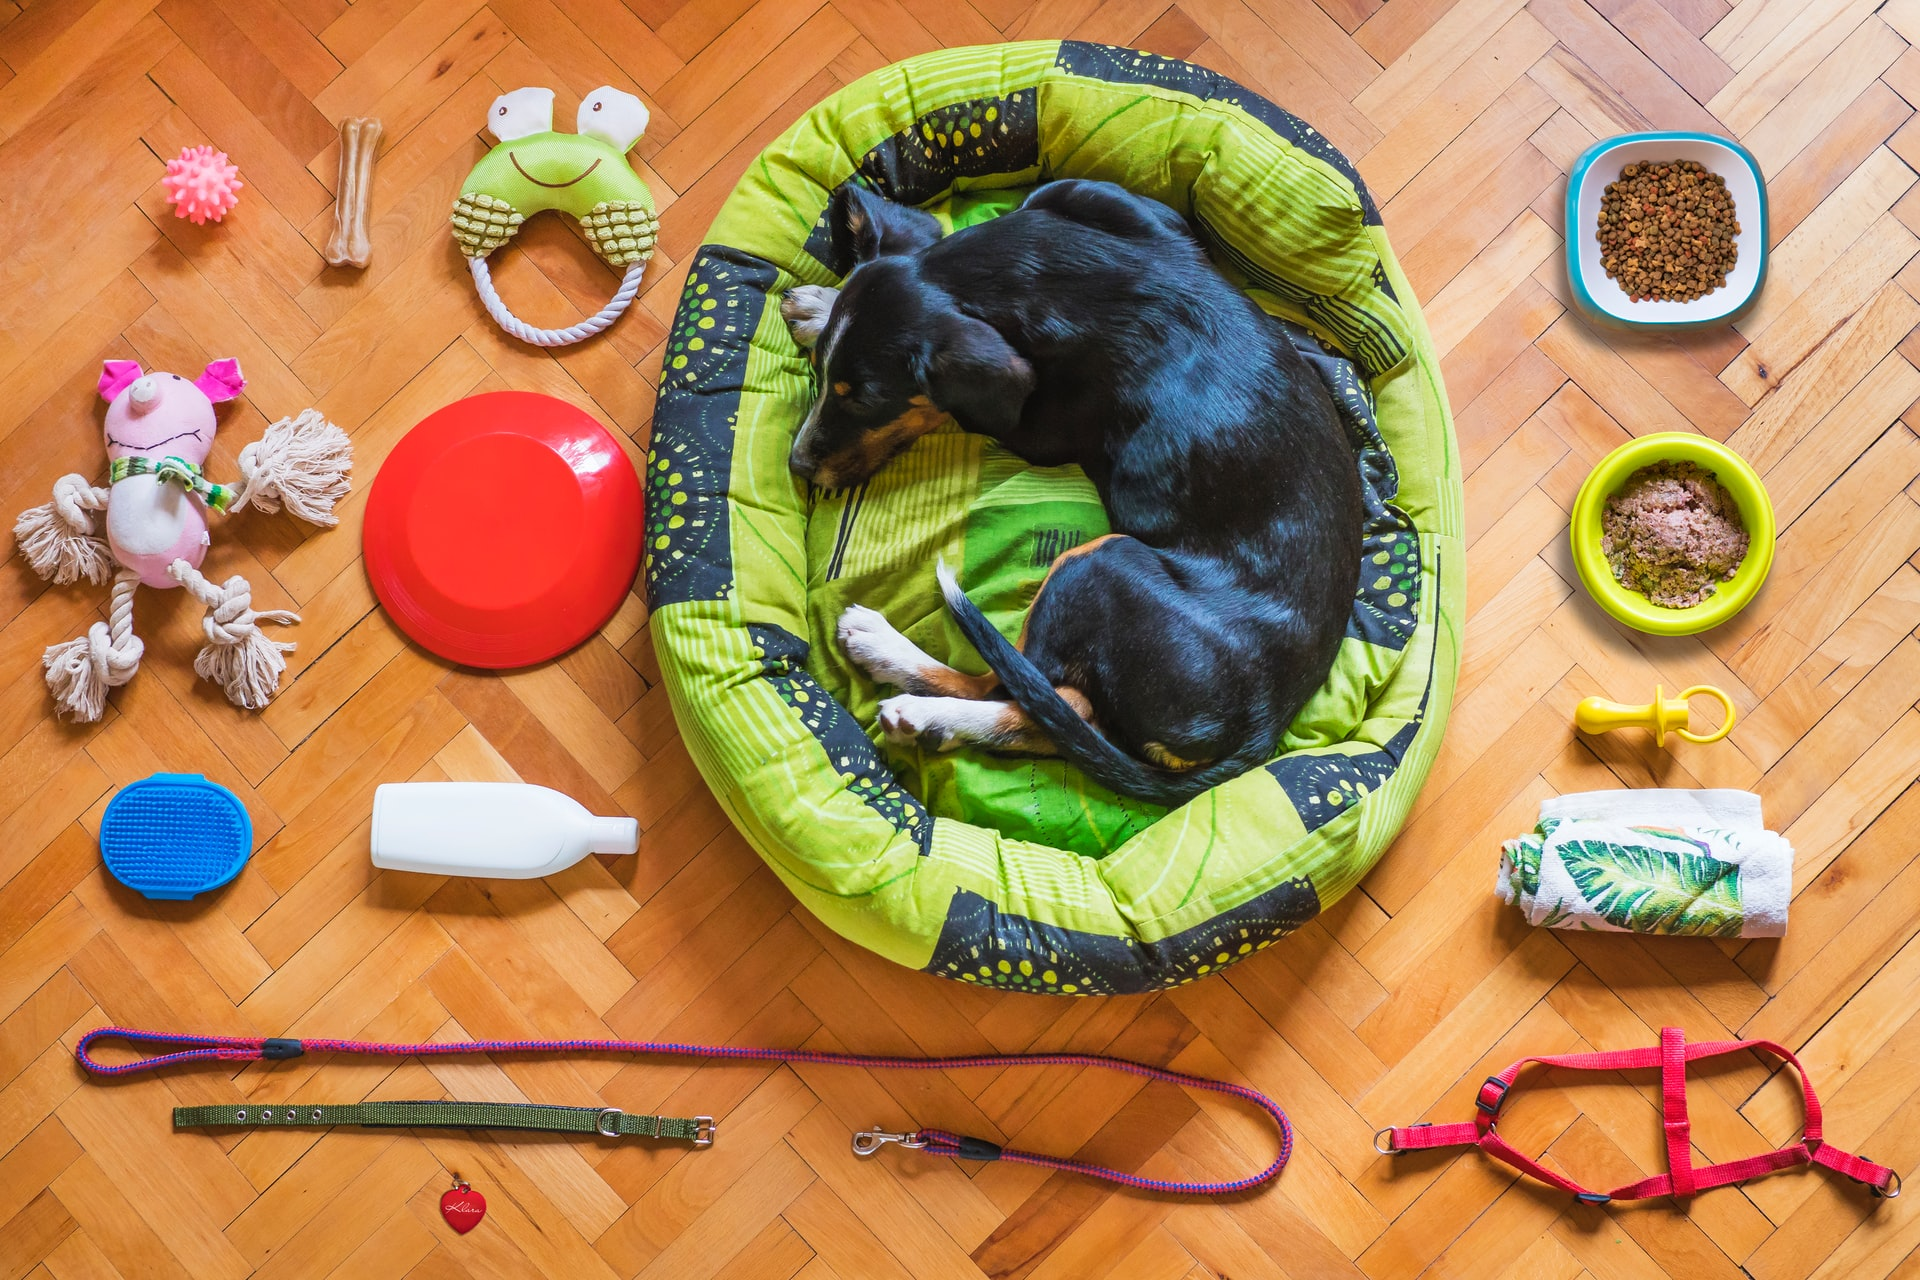 Simple Ideas for Organizing Pet Supplies and Toys